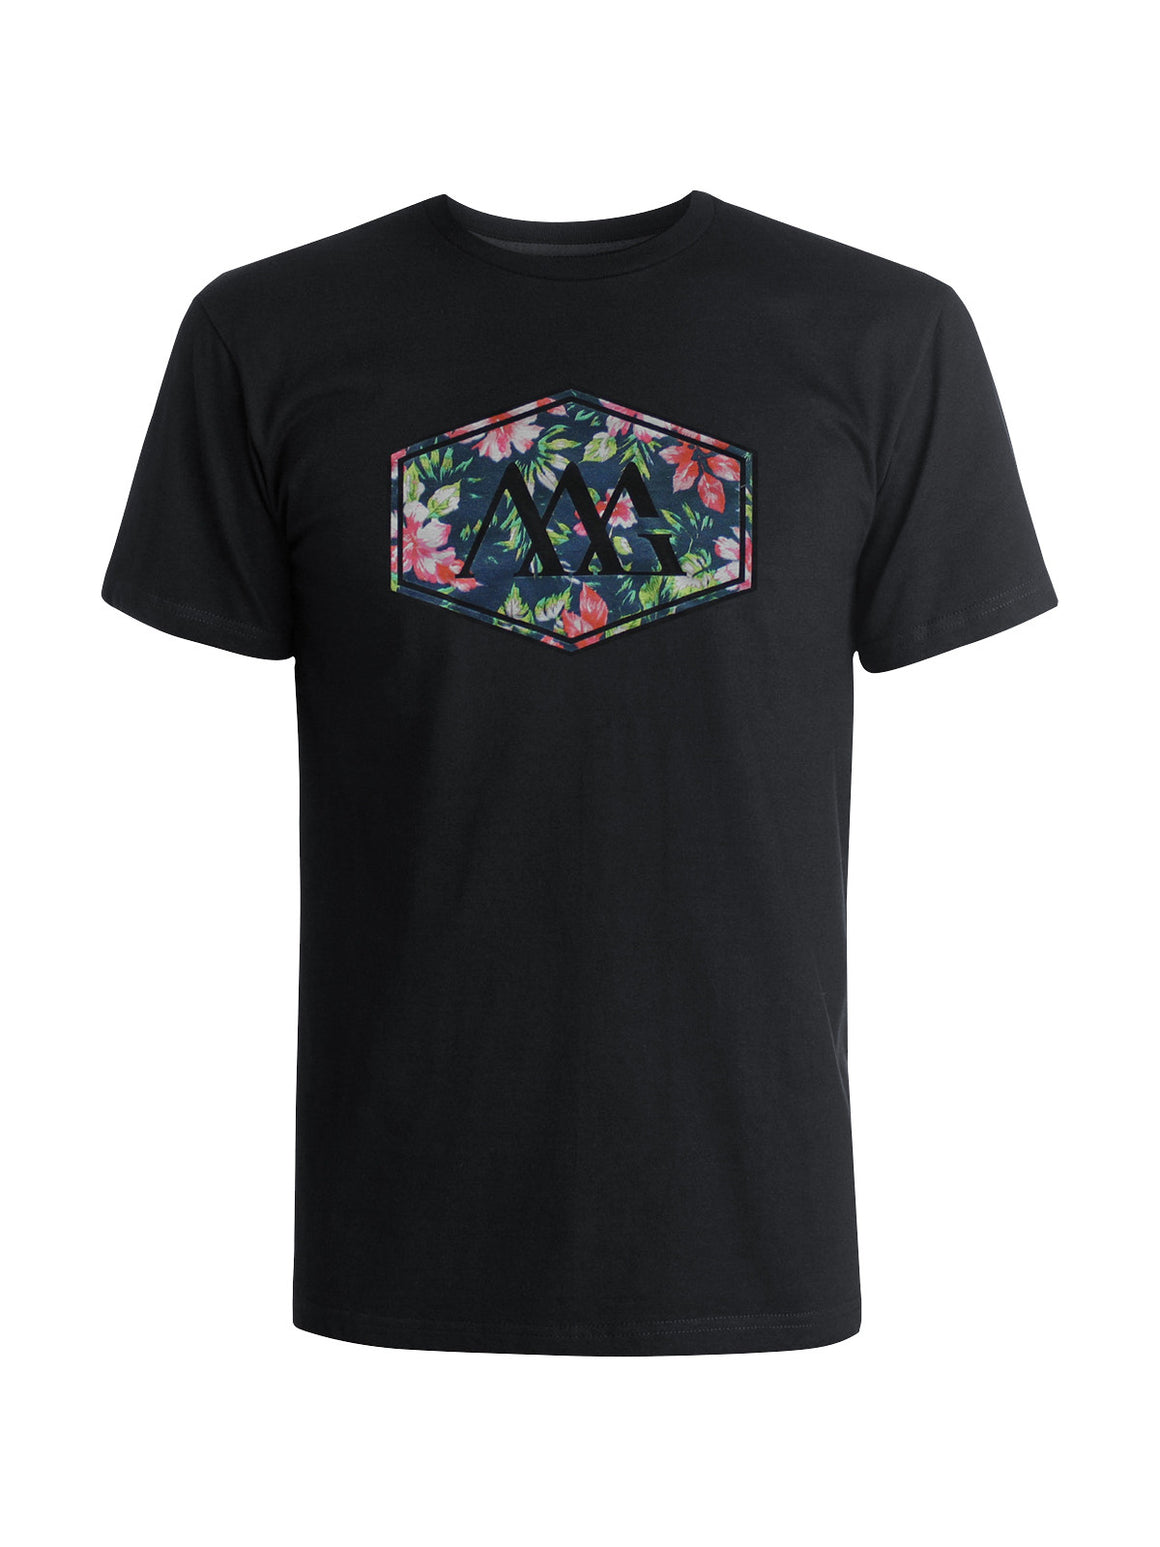 Hex Aloha Tee Shirt - Black (Hawaiian Black)